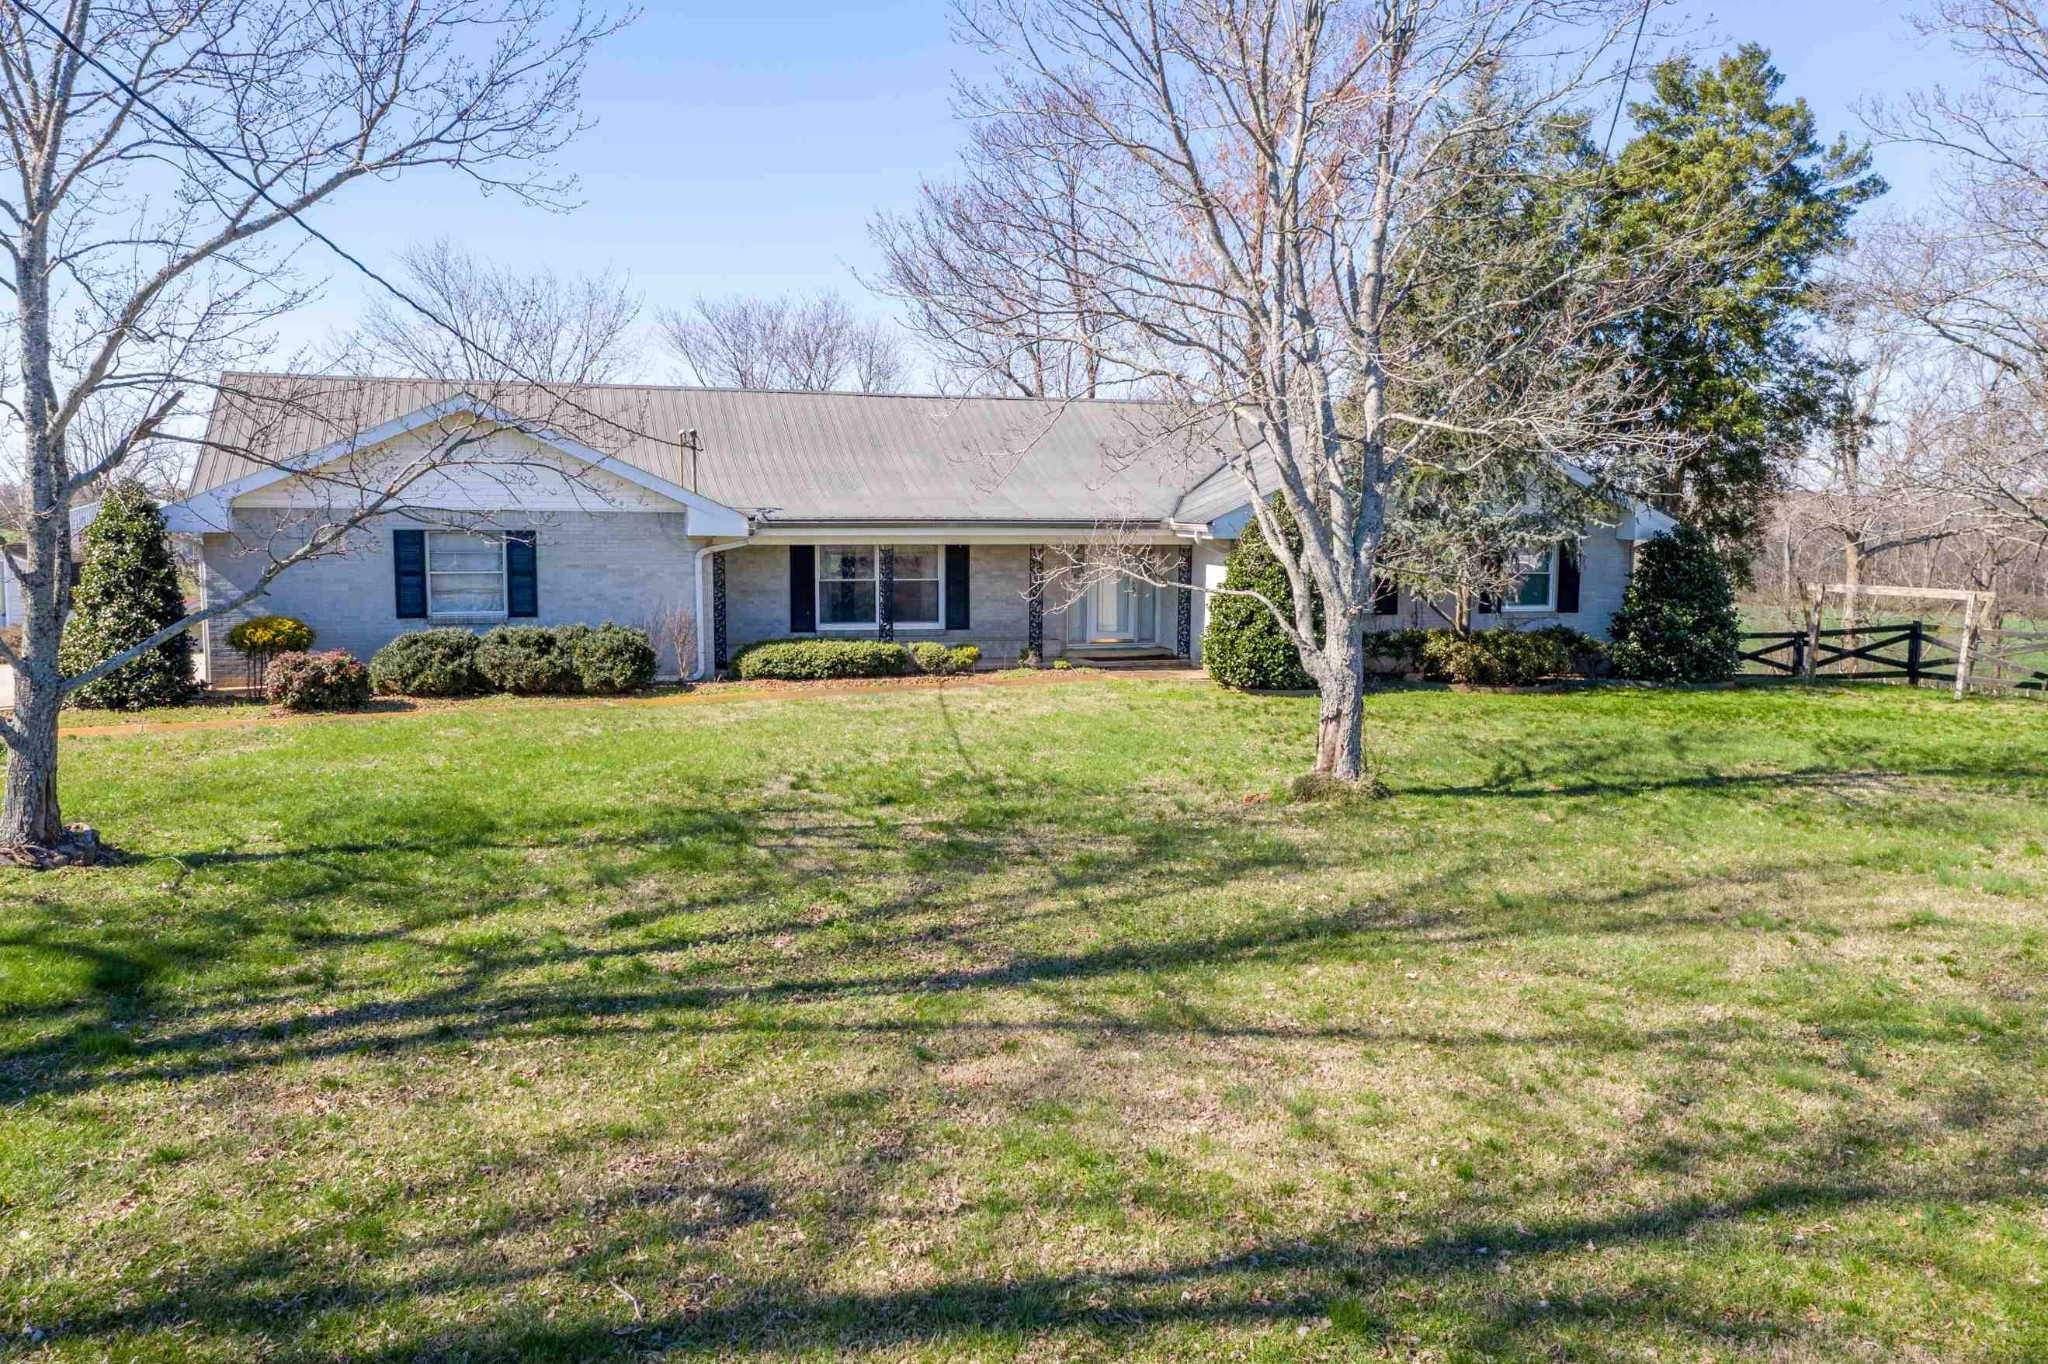 594 Modena Rd Property Photo - Decherd, TN real estate listing